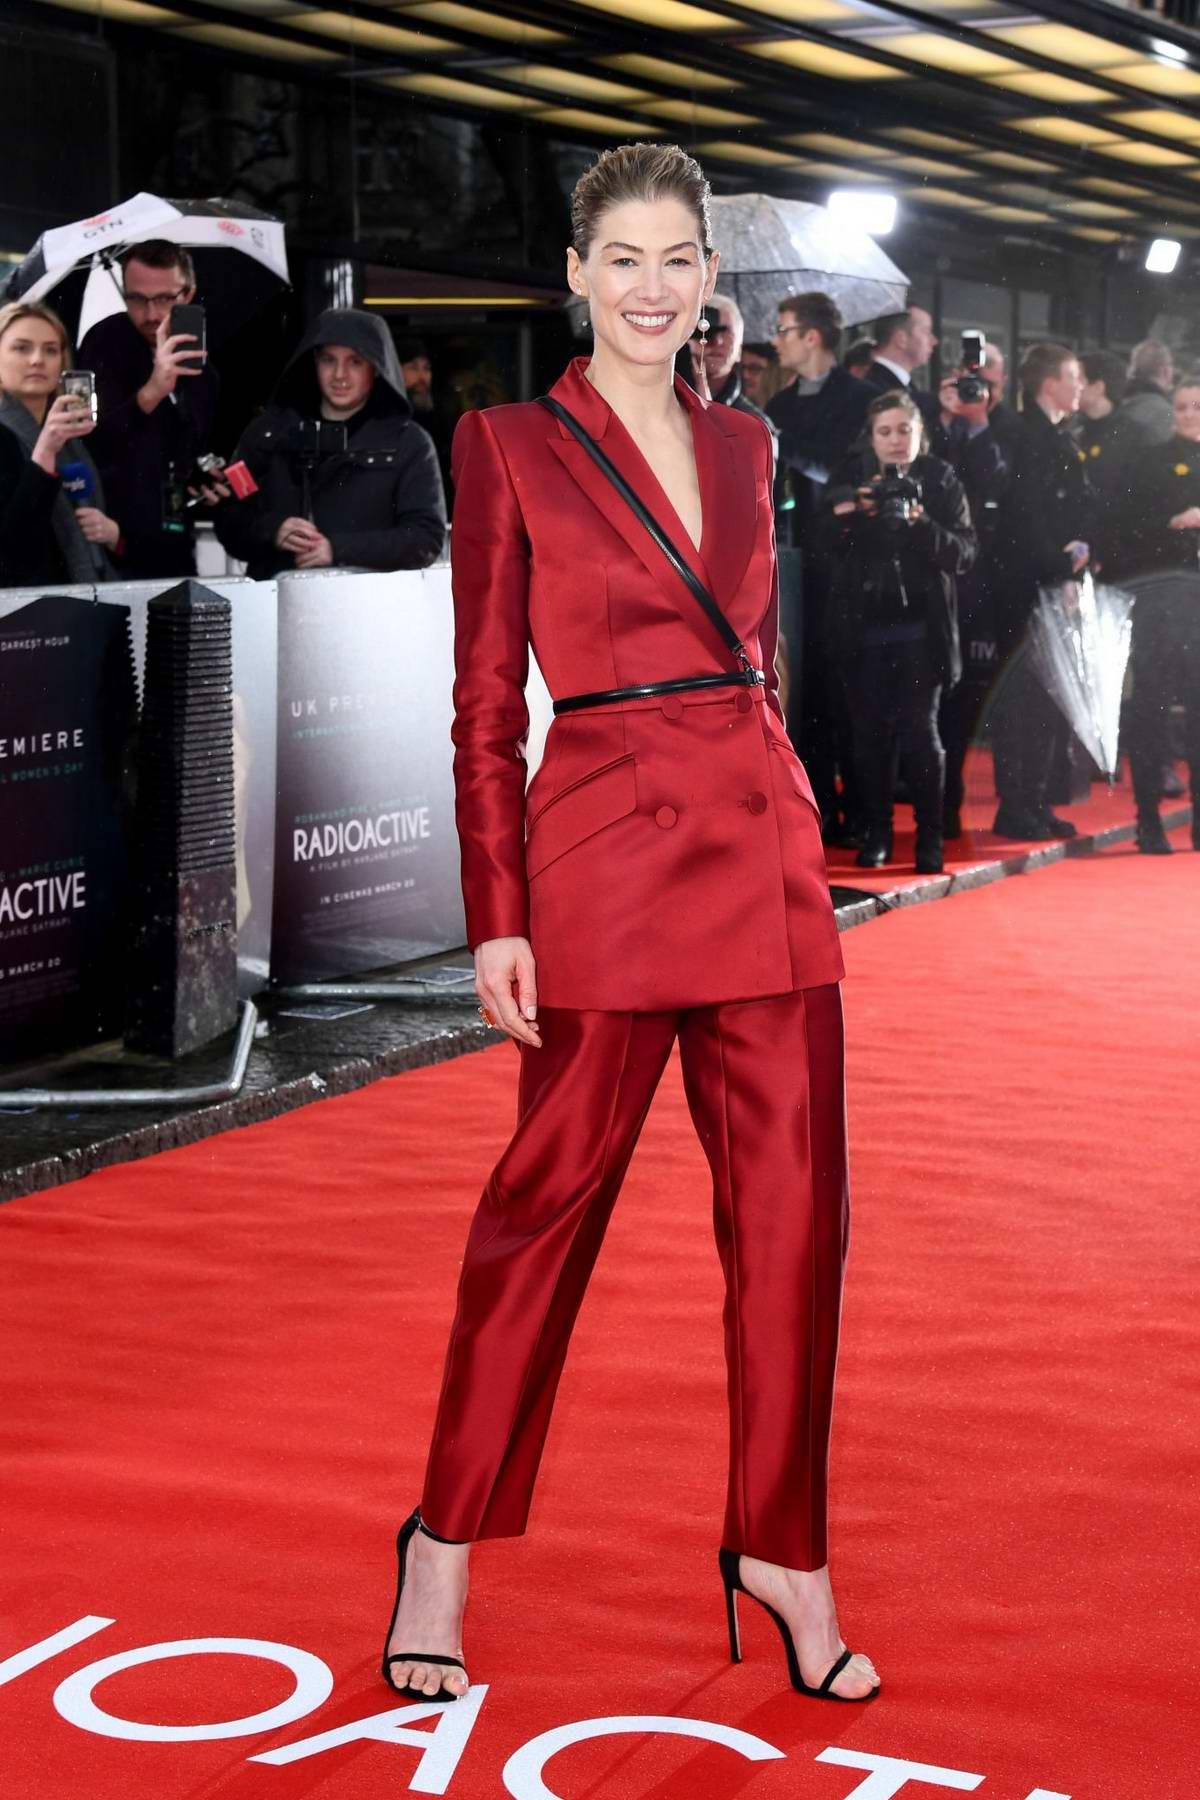 Rosamund Pike attends the Premiere of 'Radioactive' in London, UK